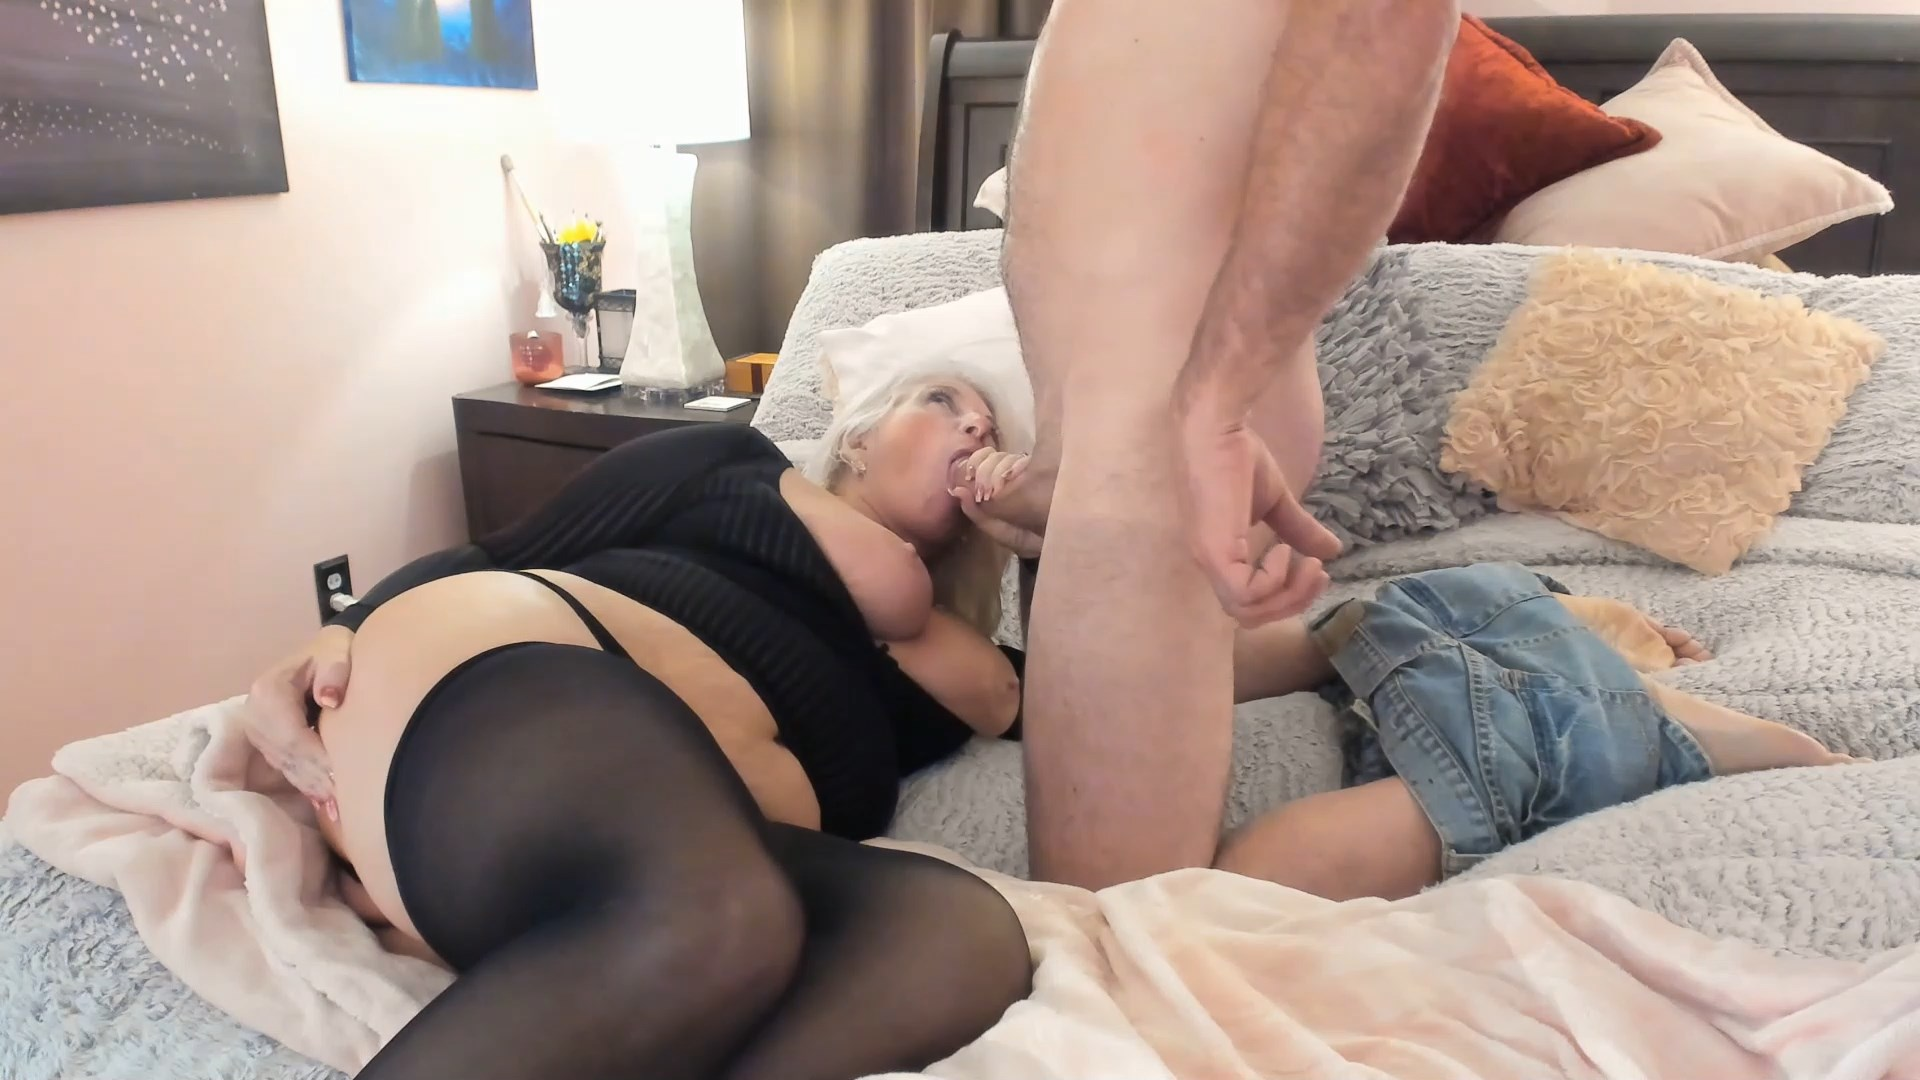 Painted Rose - Wet Vacation with Mom - Squirting Love